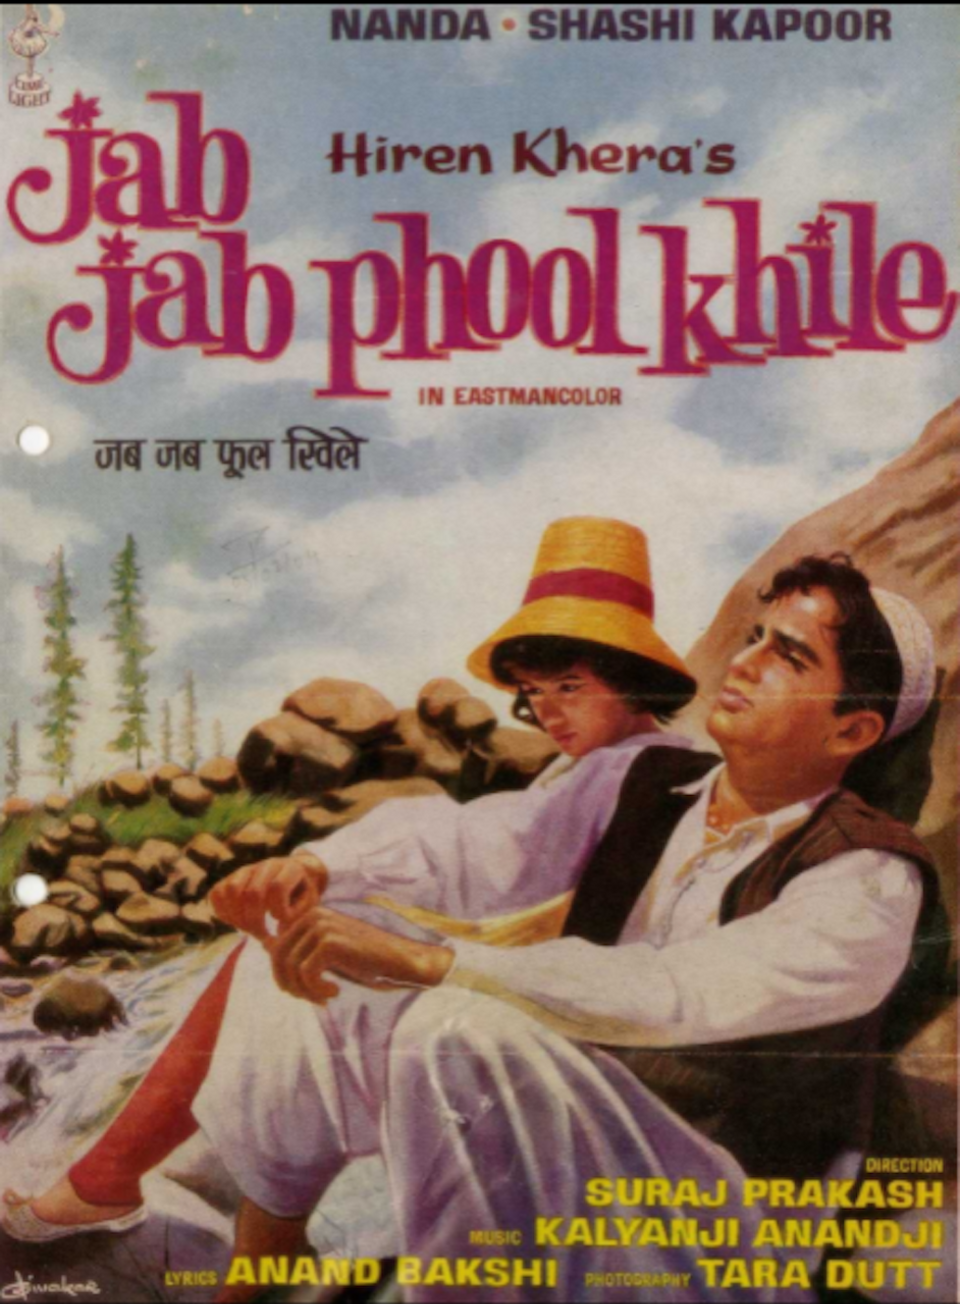 In the past three decades of the Kashmir conflict, Bollywood's misrepresentation of Kashmiris changed from projecting them in the 70s as innocent and gullible people who lacked exposure to the Westernized lifestyle, to modern day AK-47-wielding militants brainwashed by religious fundamentalists.